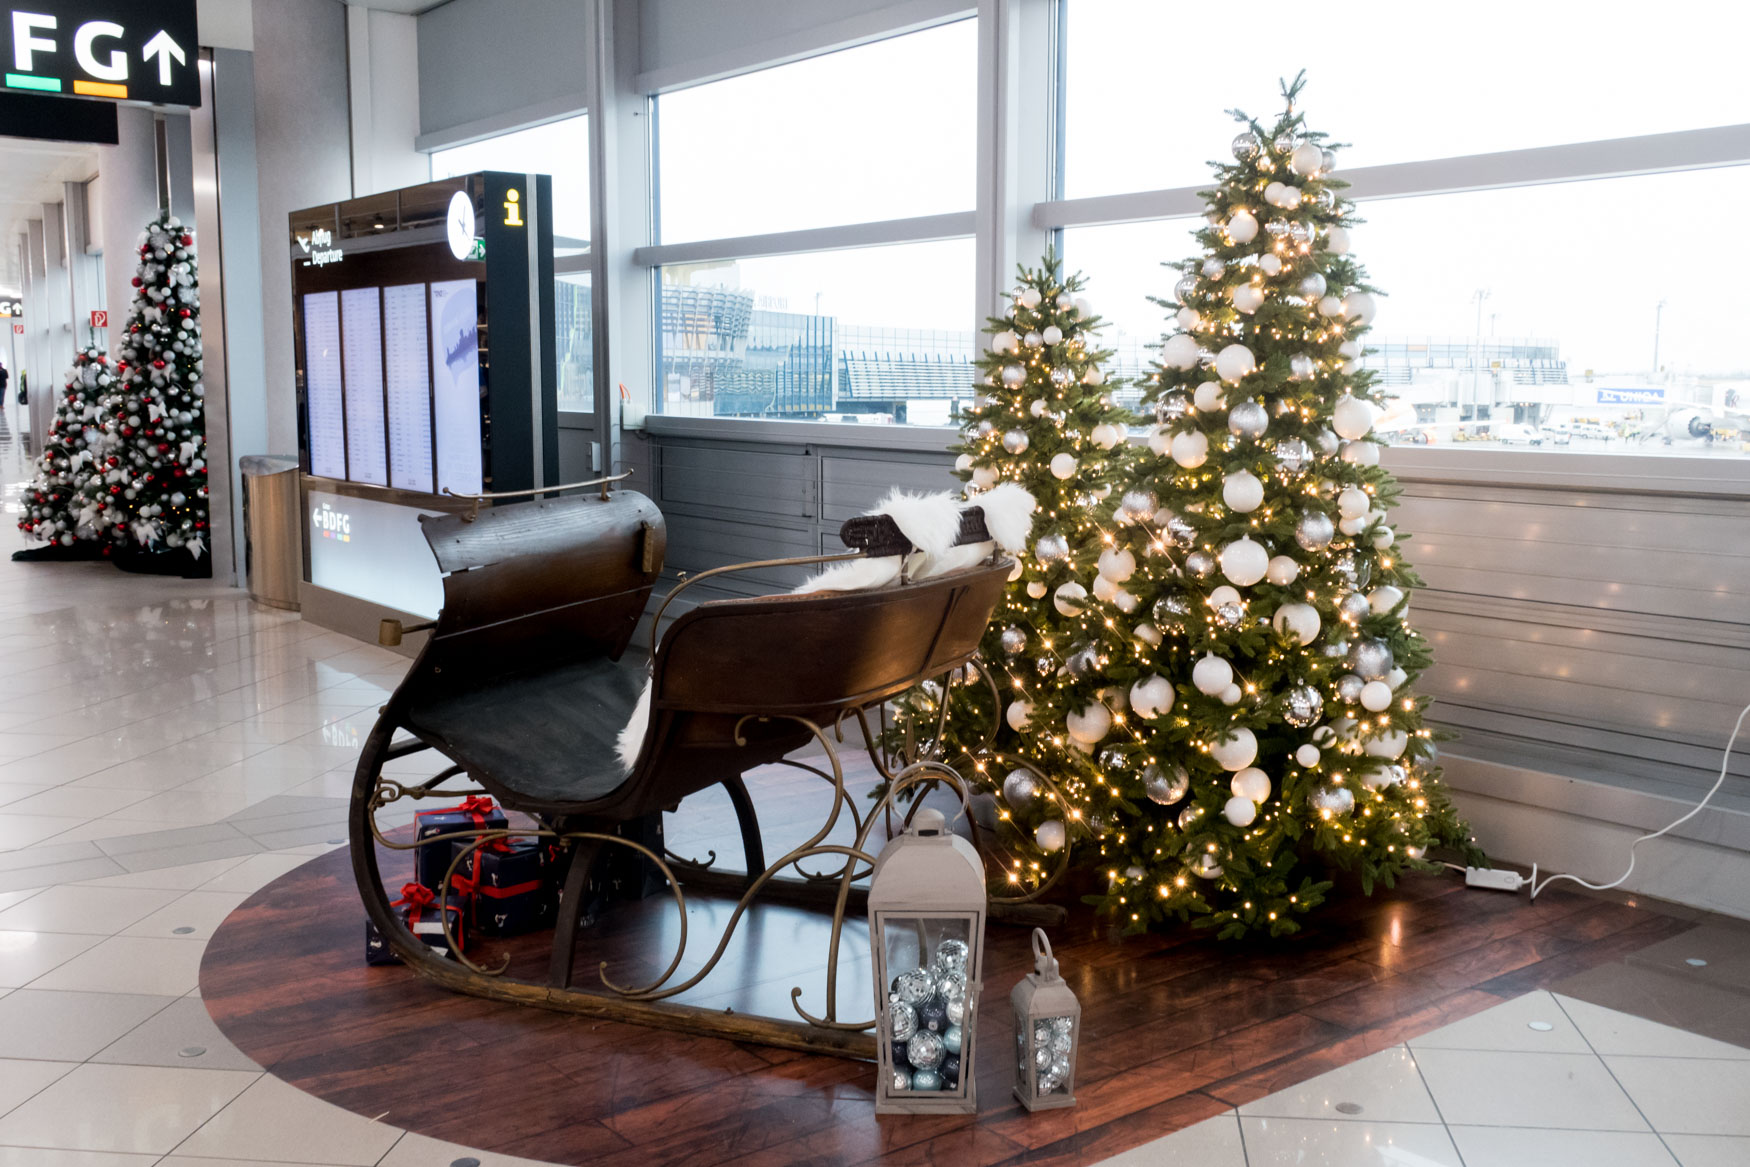 Christmas Decorations at Vienna Airport